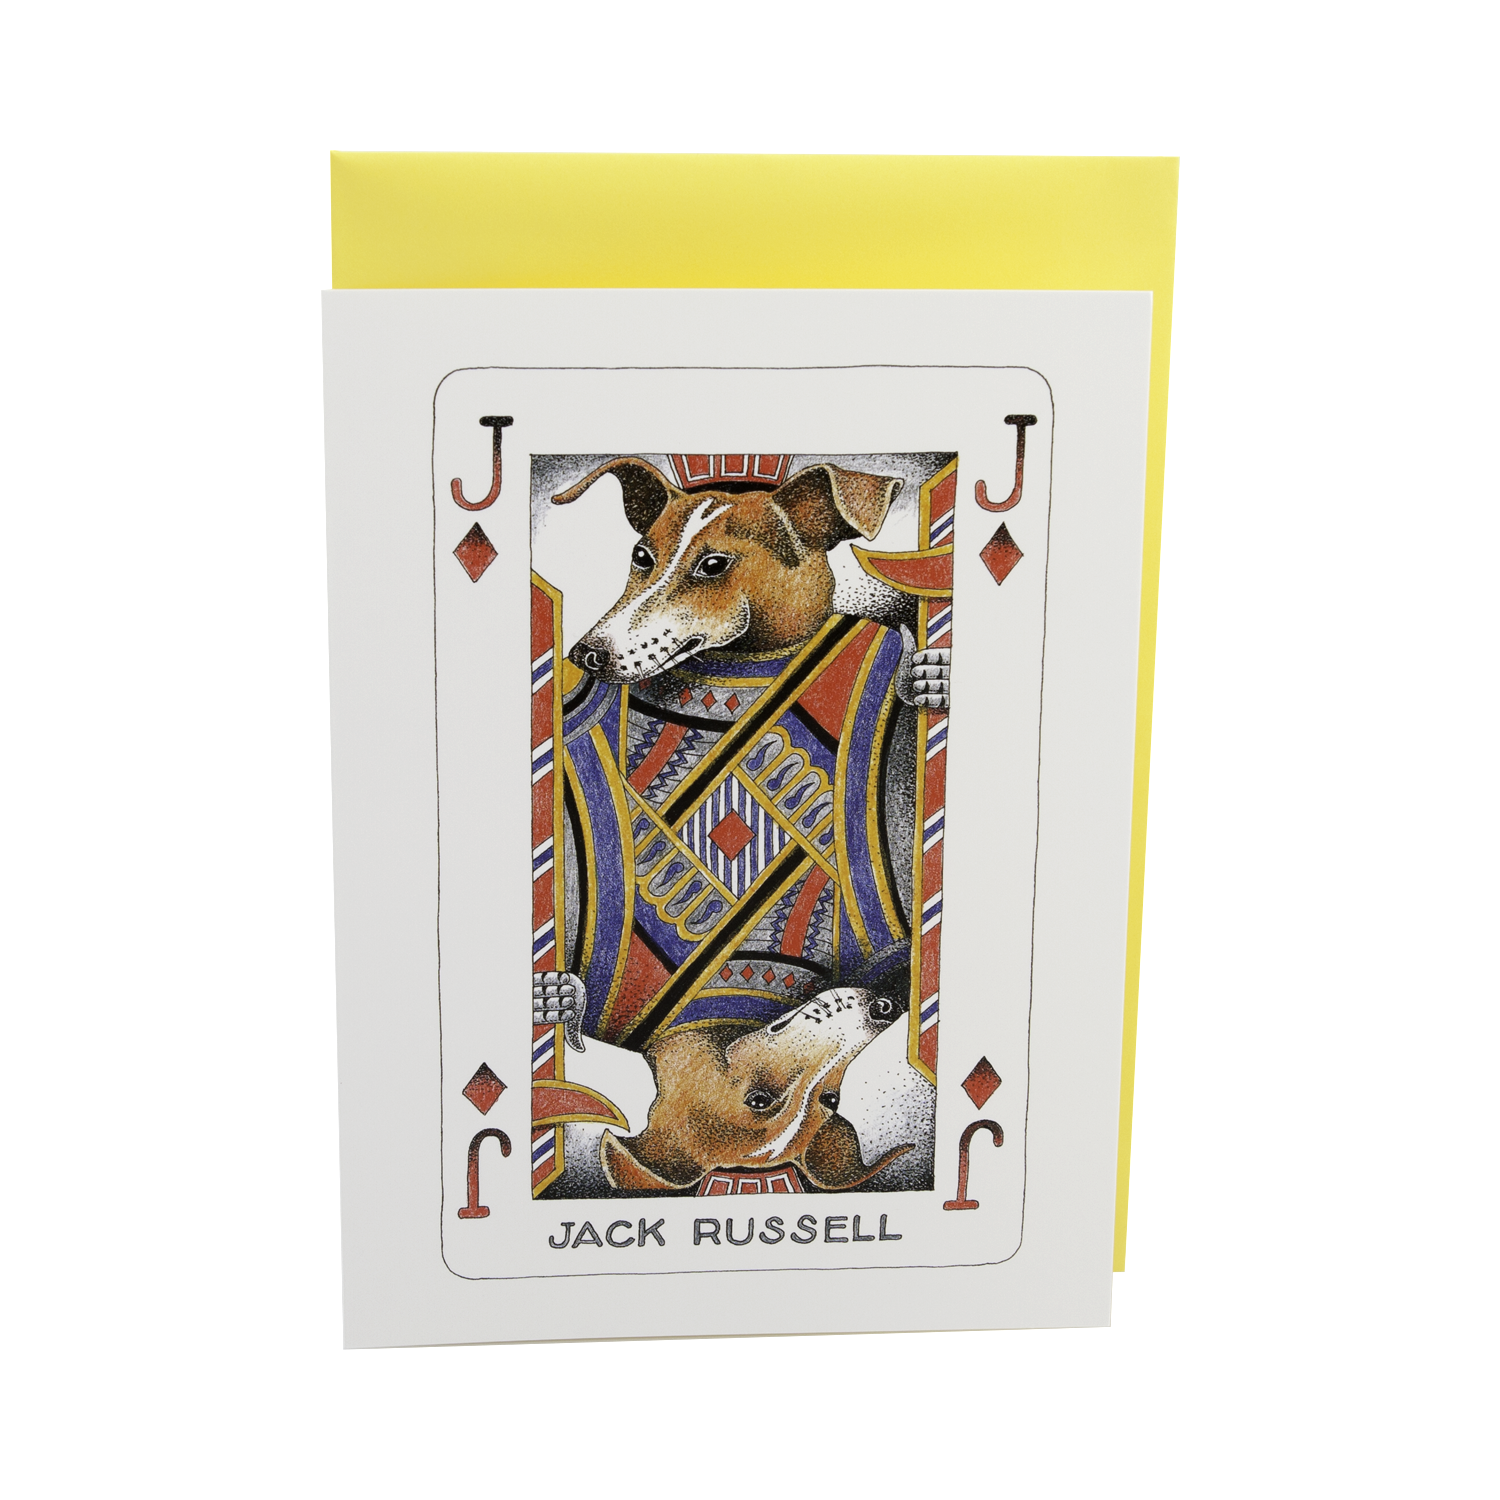 DogKrazy.Gifts – Simon Drew Jack Russell, Humorous card featuring a Jack Russell as the Jack of Diamonds. Part of the Simon Drew Dog Collection available from Dog Krazy Gifts